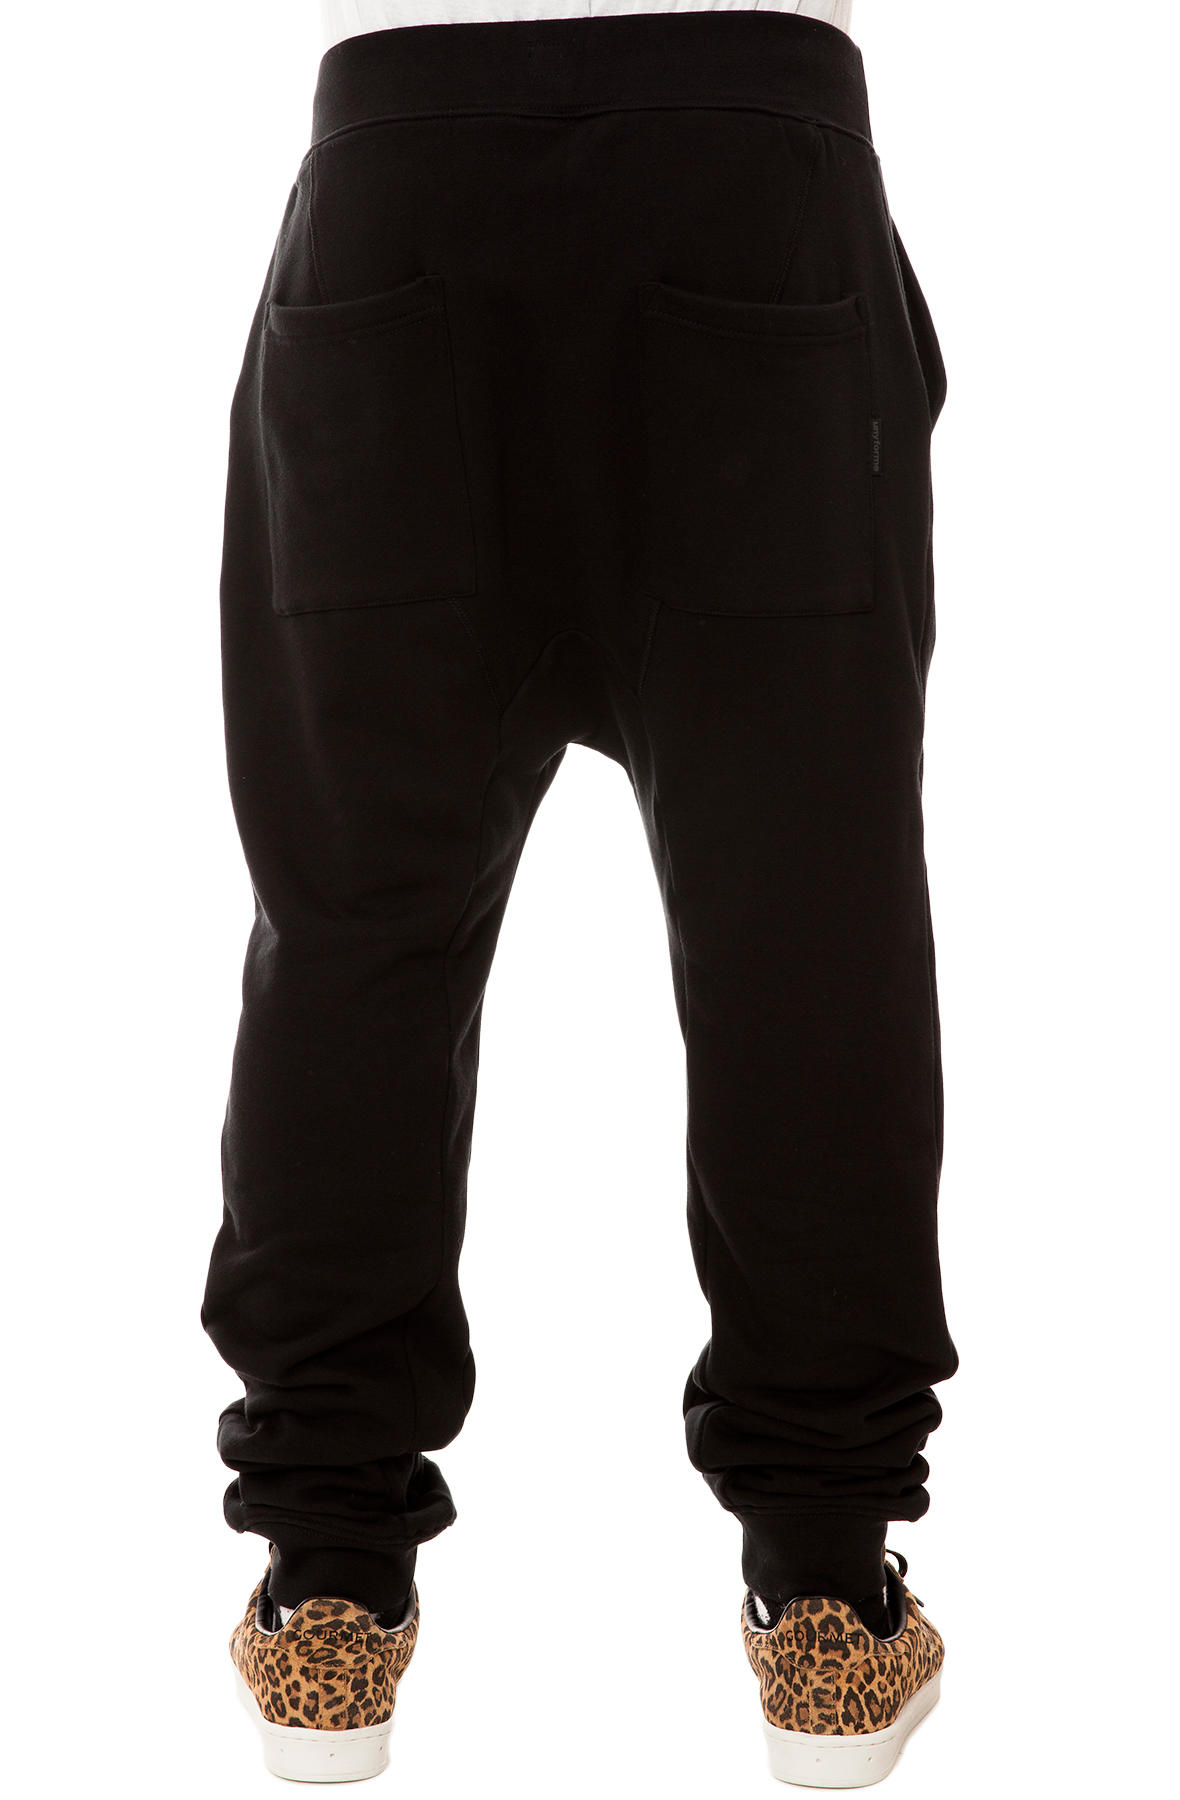 the hammer pants in black